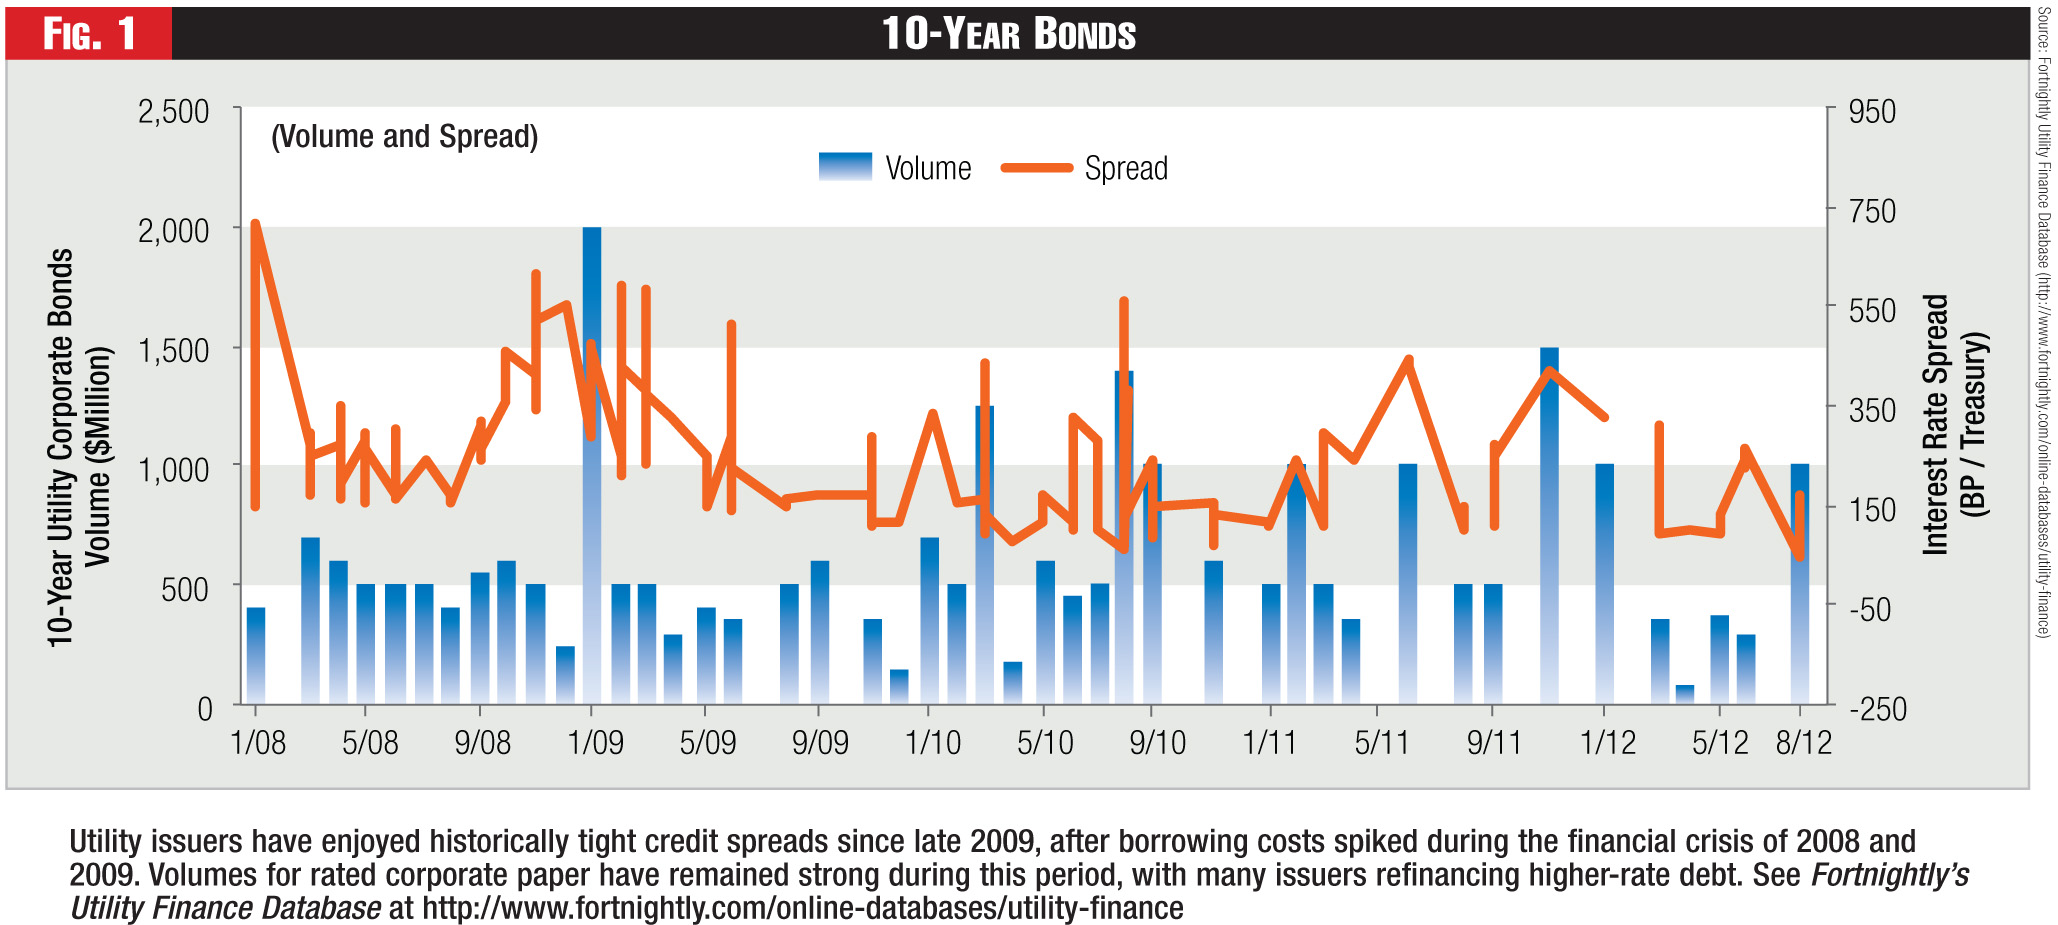 Figure 1 - 10-Year Bonds